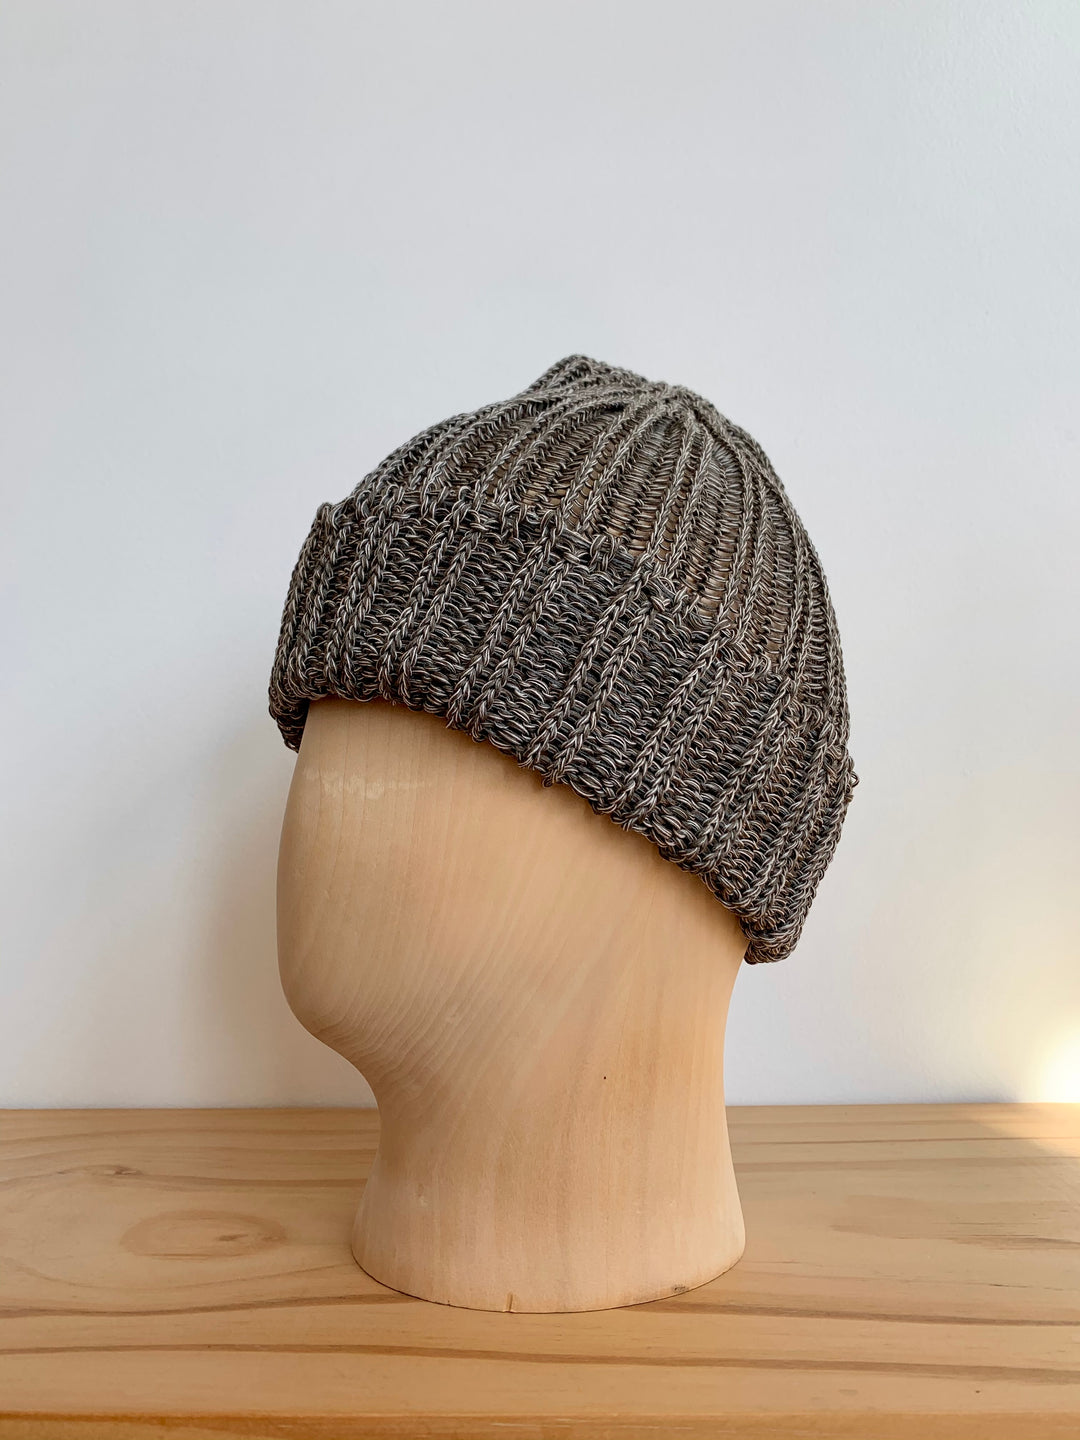 Cableami Grey Mix Linen-Like Pre-Organic Cotton Knit Cap